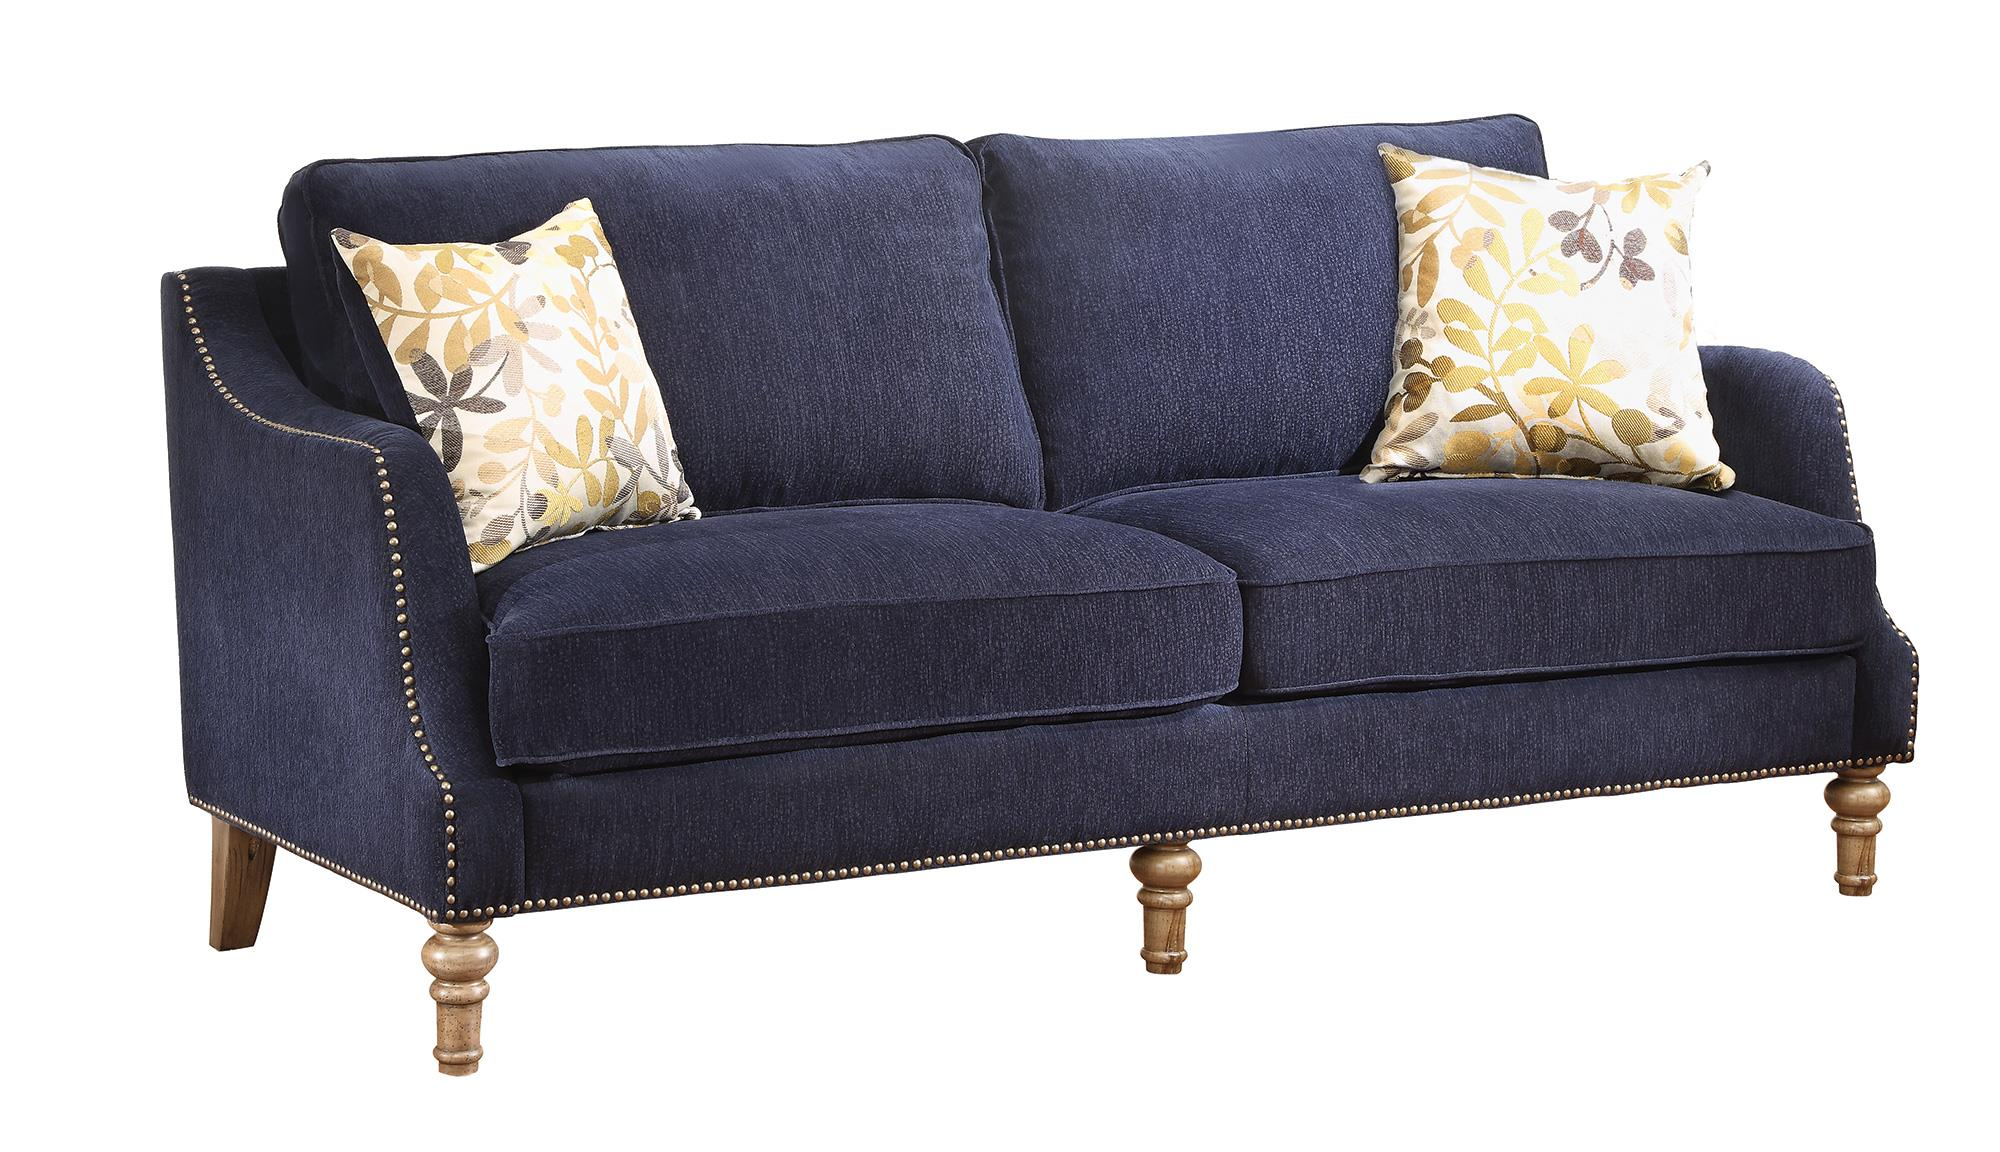 Coaster Vessot Sofa - Item Number: 505791